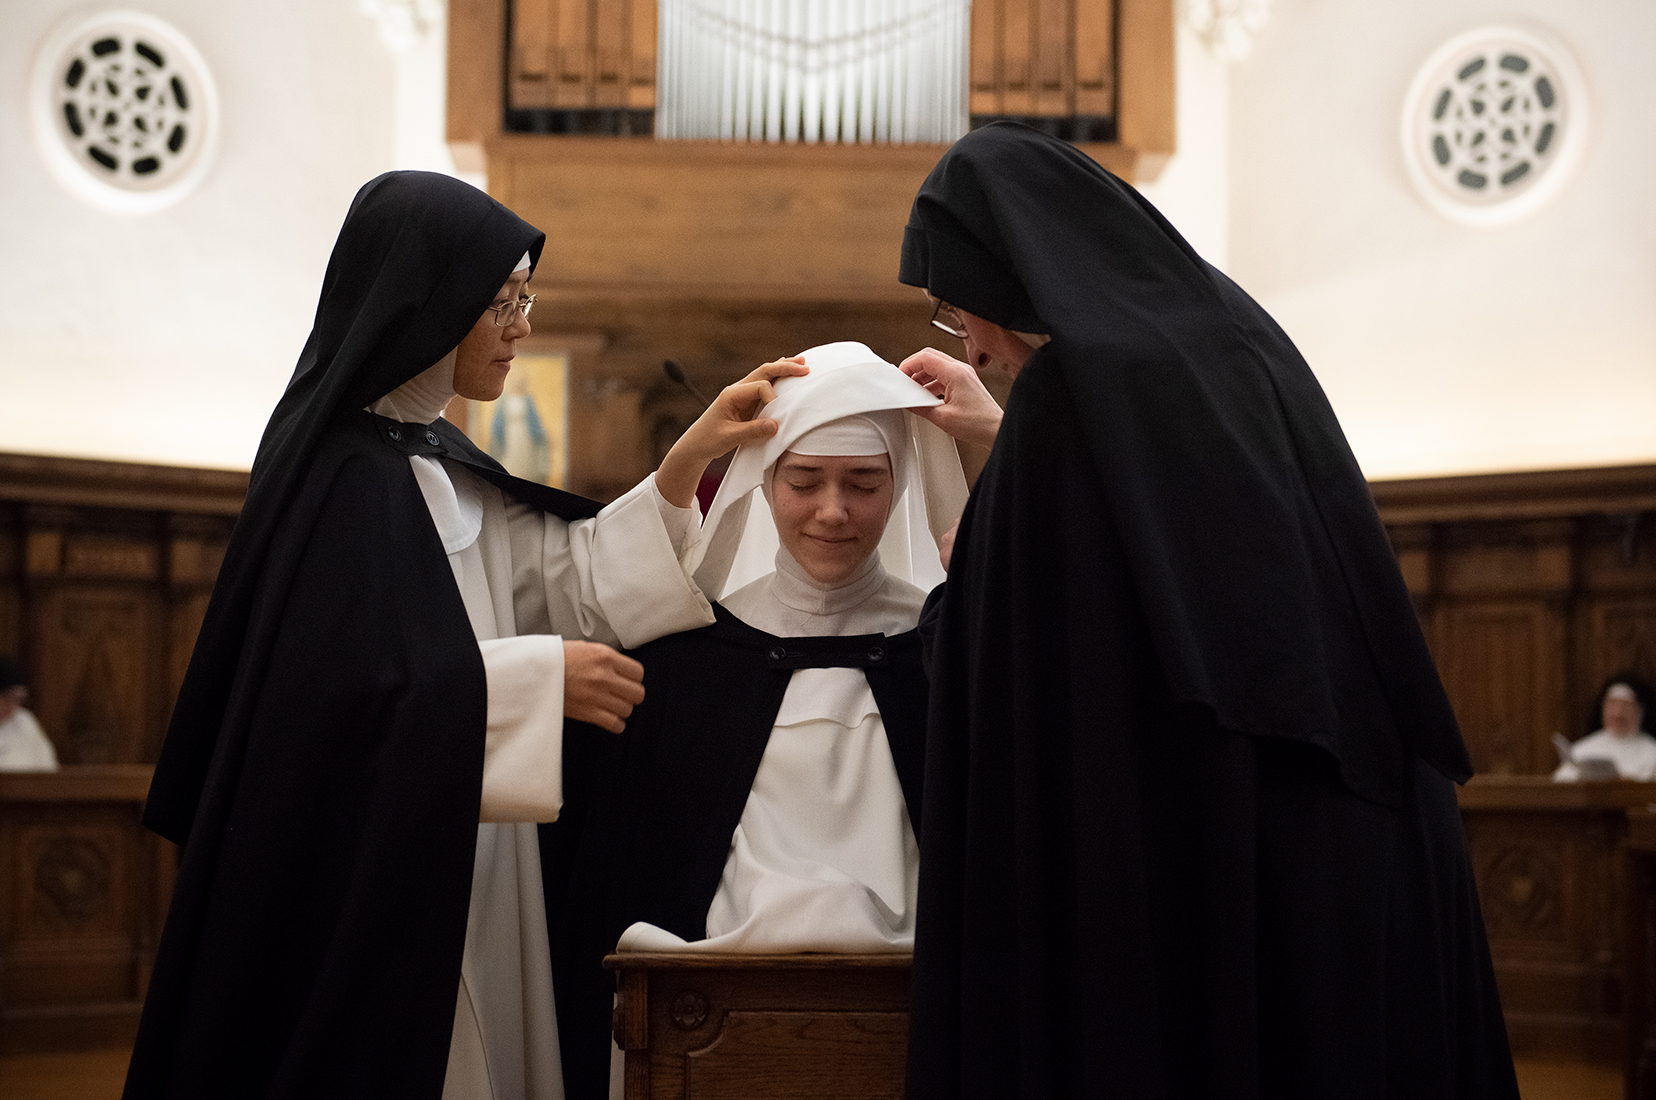 DOMINICAN SISTERS OF SUMMIT,PROFESSION